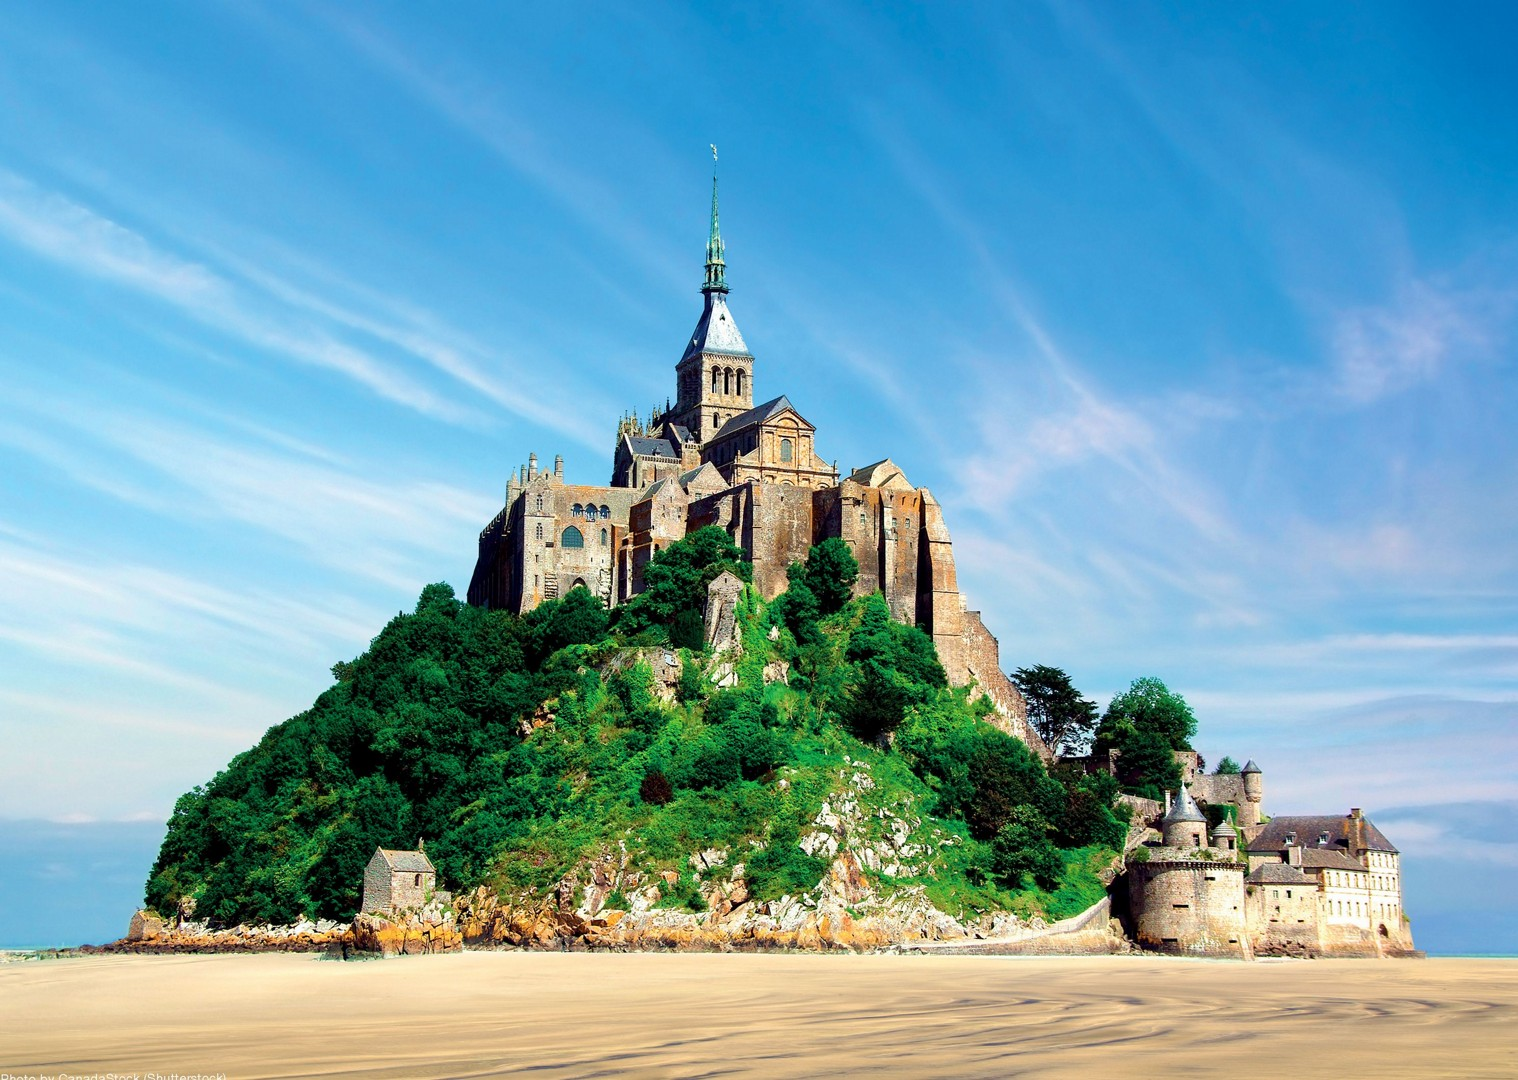 visit-mont-saint-michel-with-saddle-skedaddle-leisure-cycling-tours.jpg - NEW! France - Versailles to Mont Saint Michel - Self-Guided Leisure Cycling Holiday - Leisure Cycling